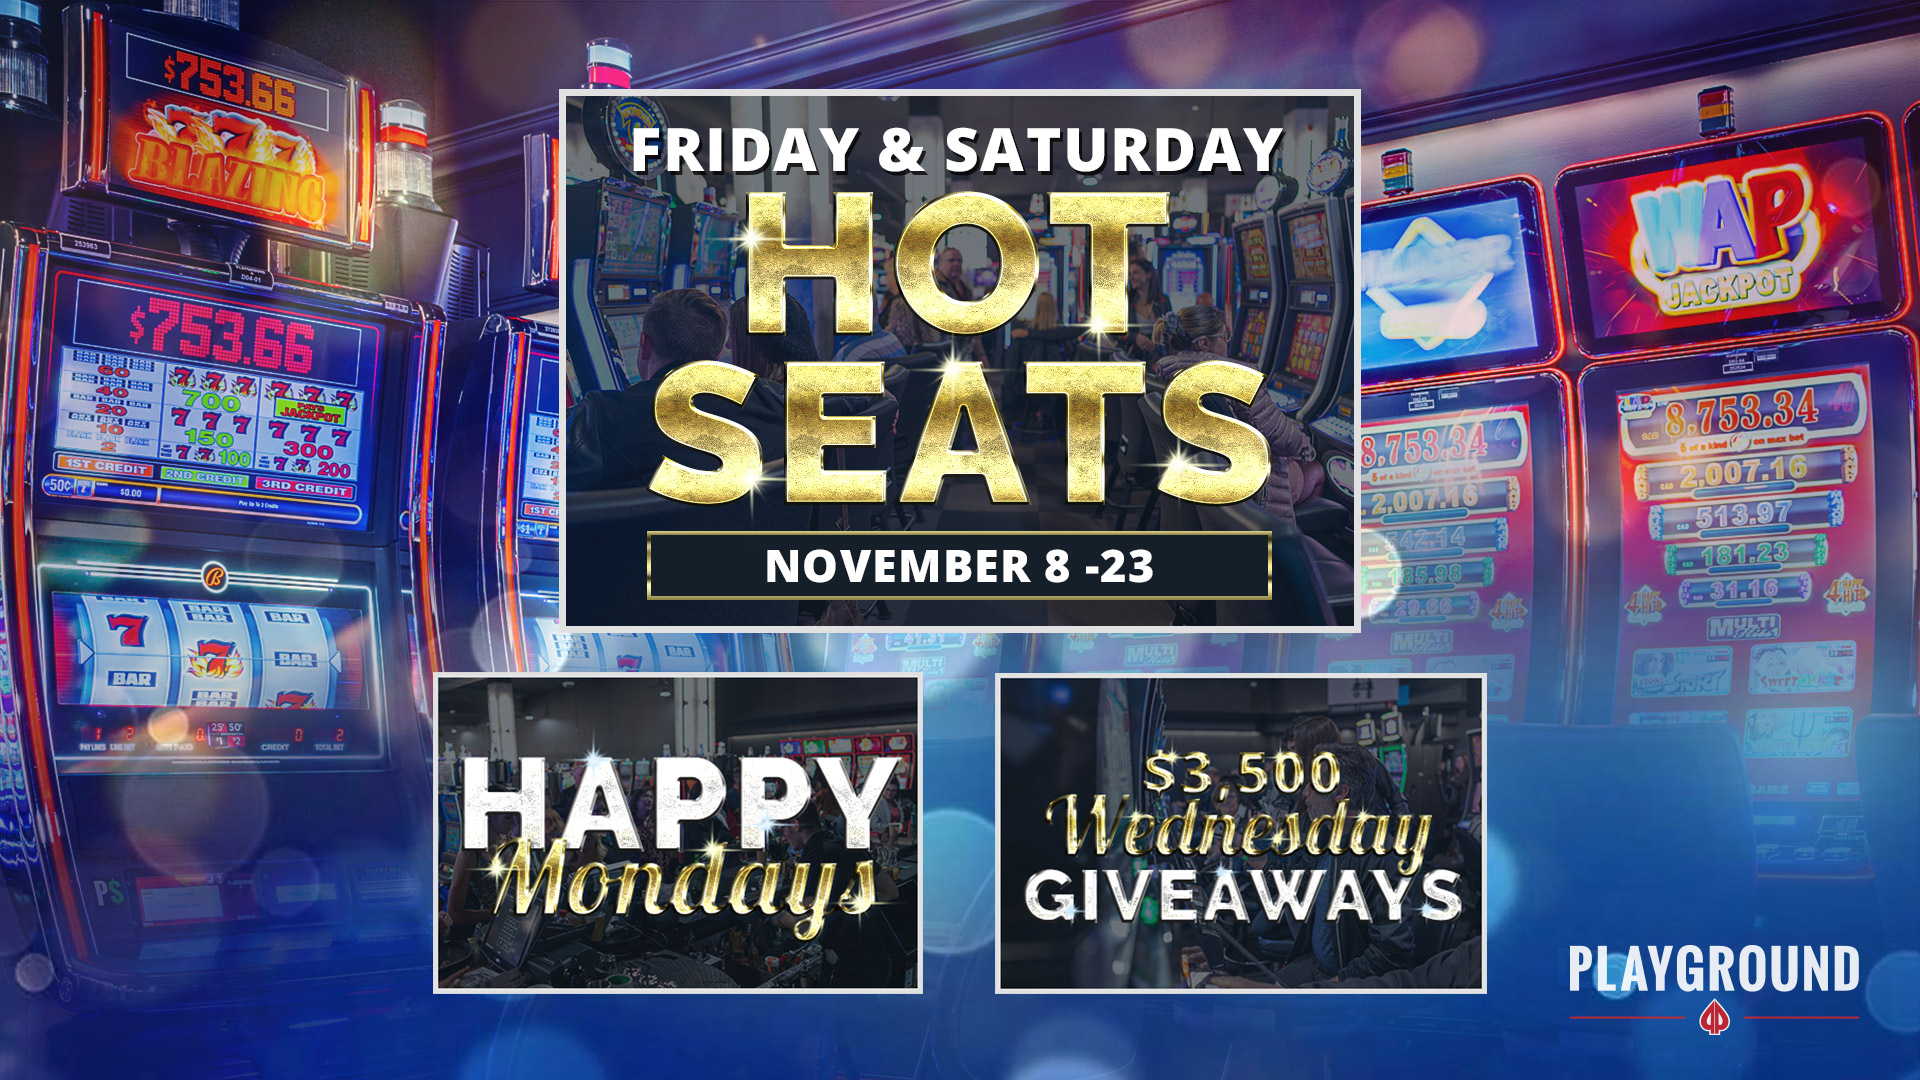 Over $15,000 in Weekly Cash and Prizes!